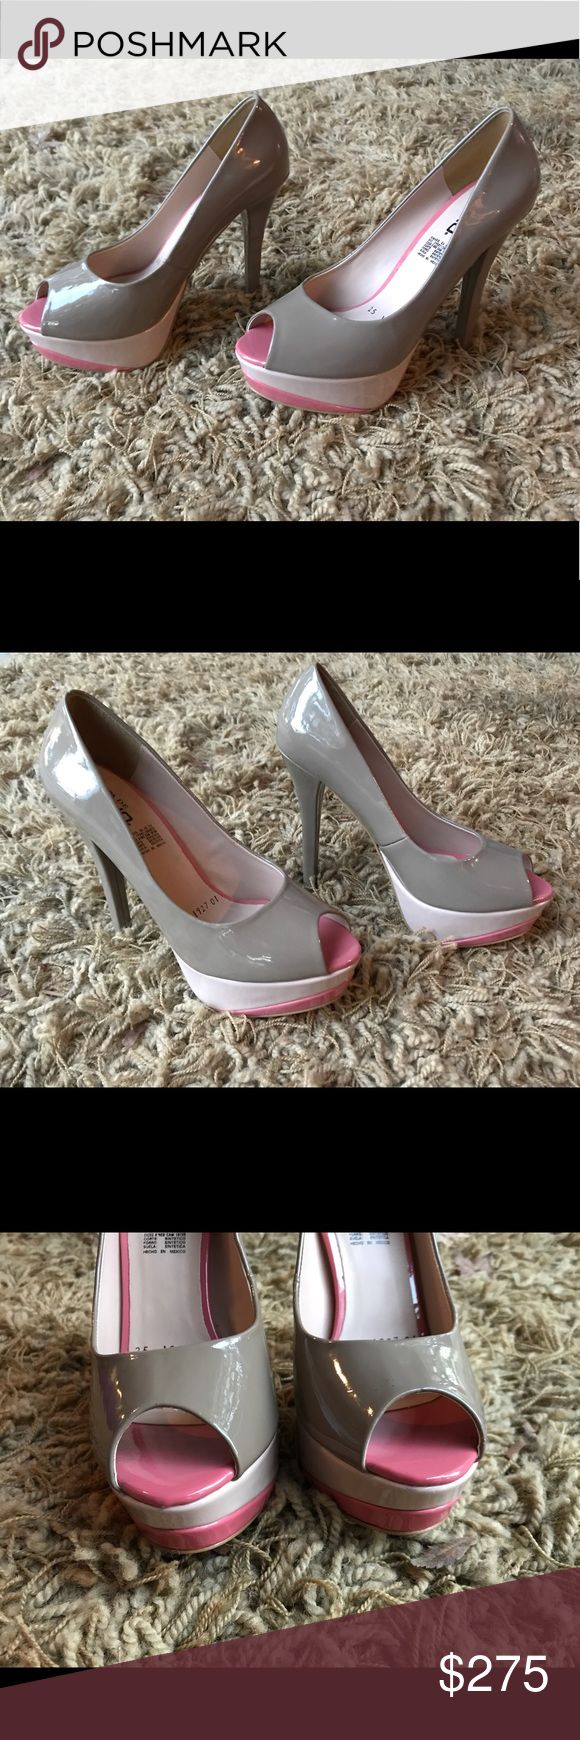 """Capa De Ozono Nude & Pink stilettos Brand new Capa de Ozono stilettos 6"""" heel made in Mexico absolutely stunning can dress up or down serial numbers for authenticity Capa de Ozono Shoes Heels"""